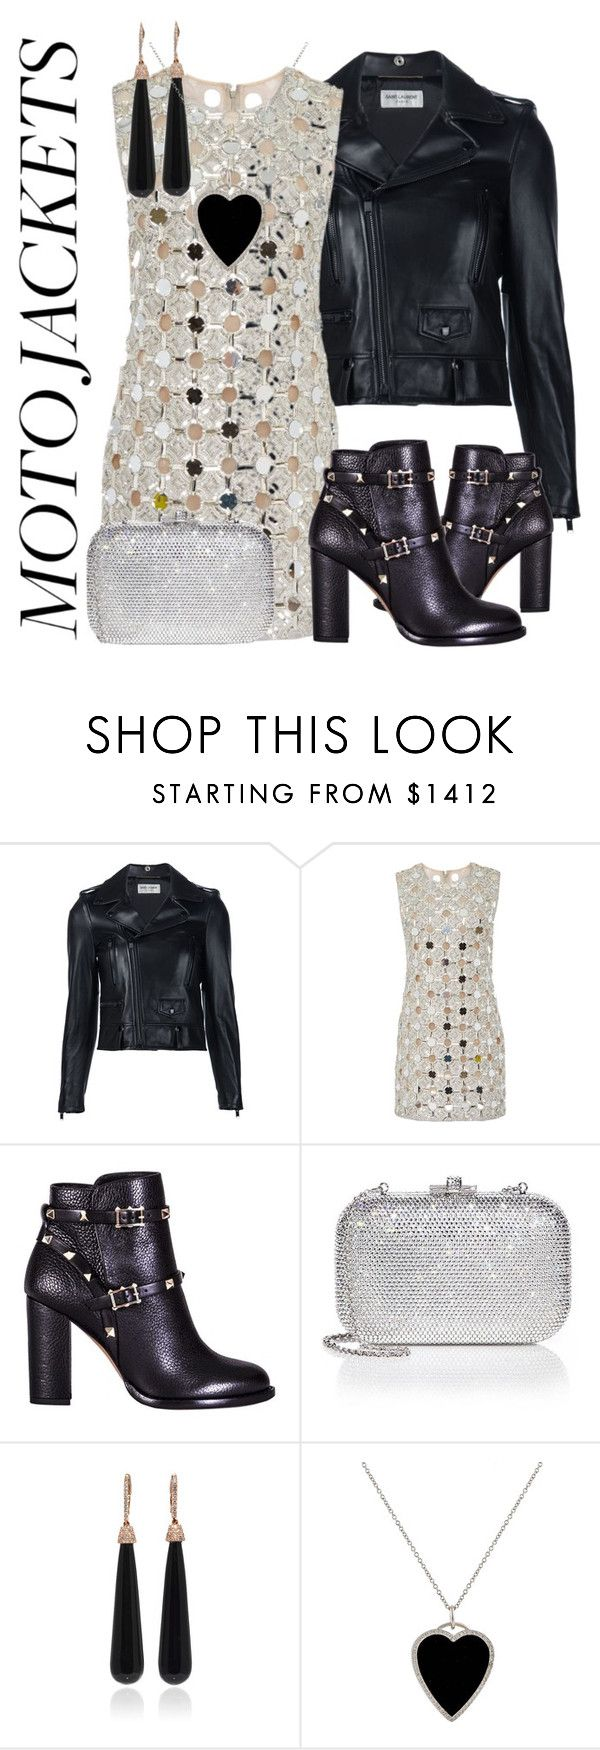 """""""moto"""" by kimir-and ❤ liked on Polyvore featuring Yves Saint Laurent, KaufmanFranco, Valentino, Judith Leiber, SUSAN FOSTER, Jennifer Meyer Jewelry, jacket, motojacket and moto"""